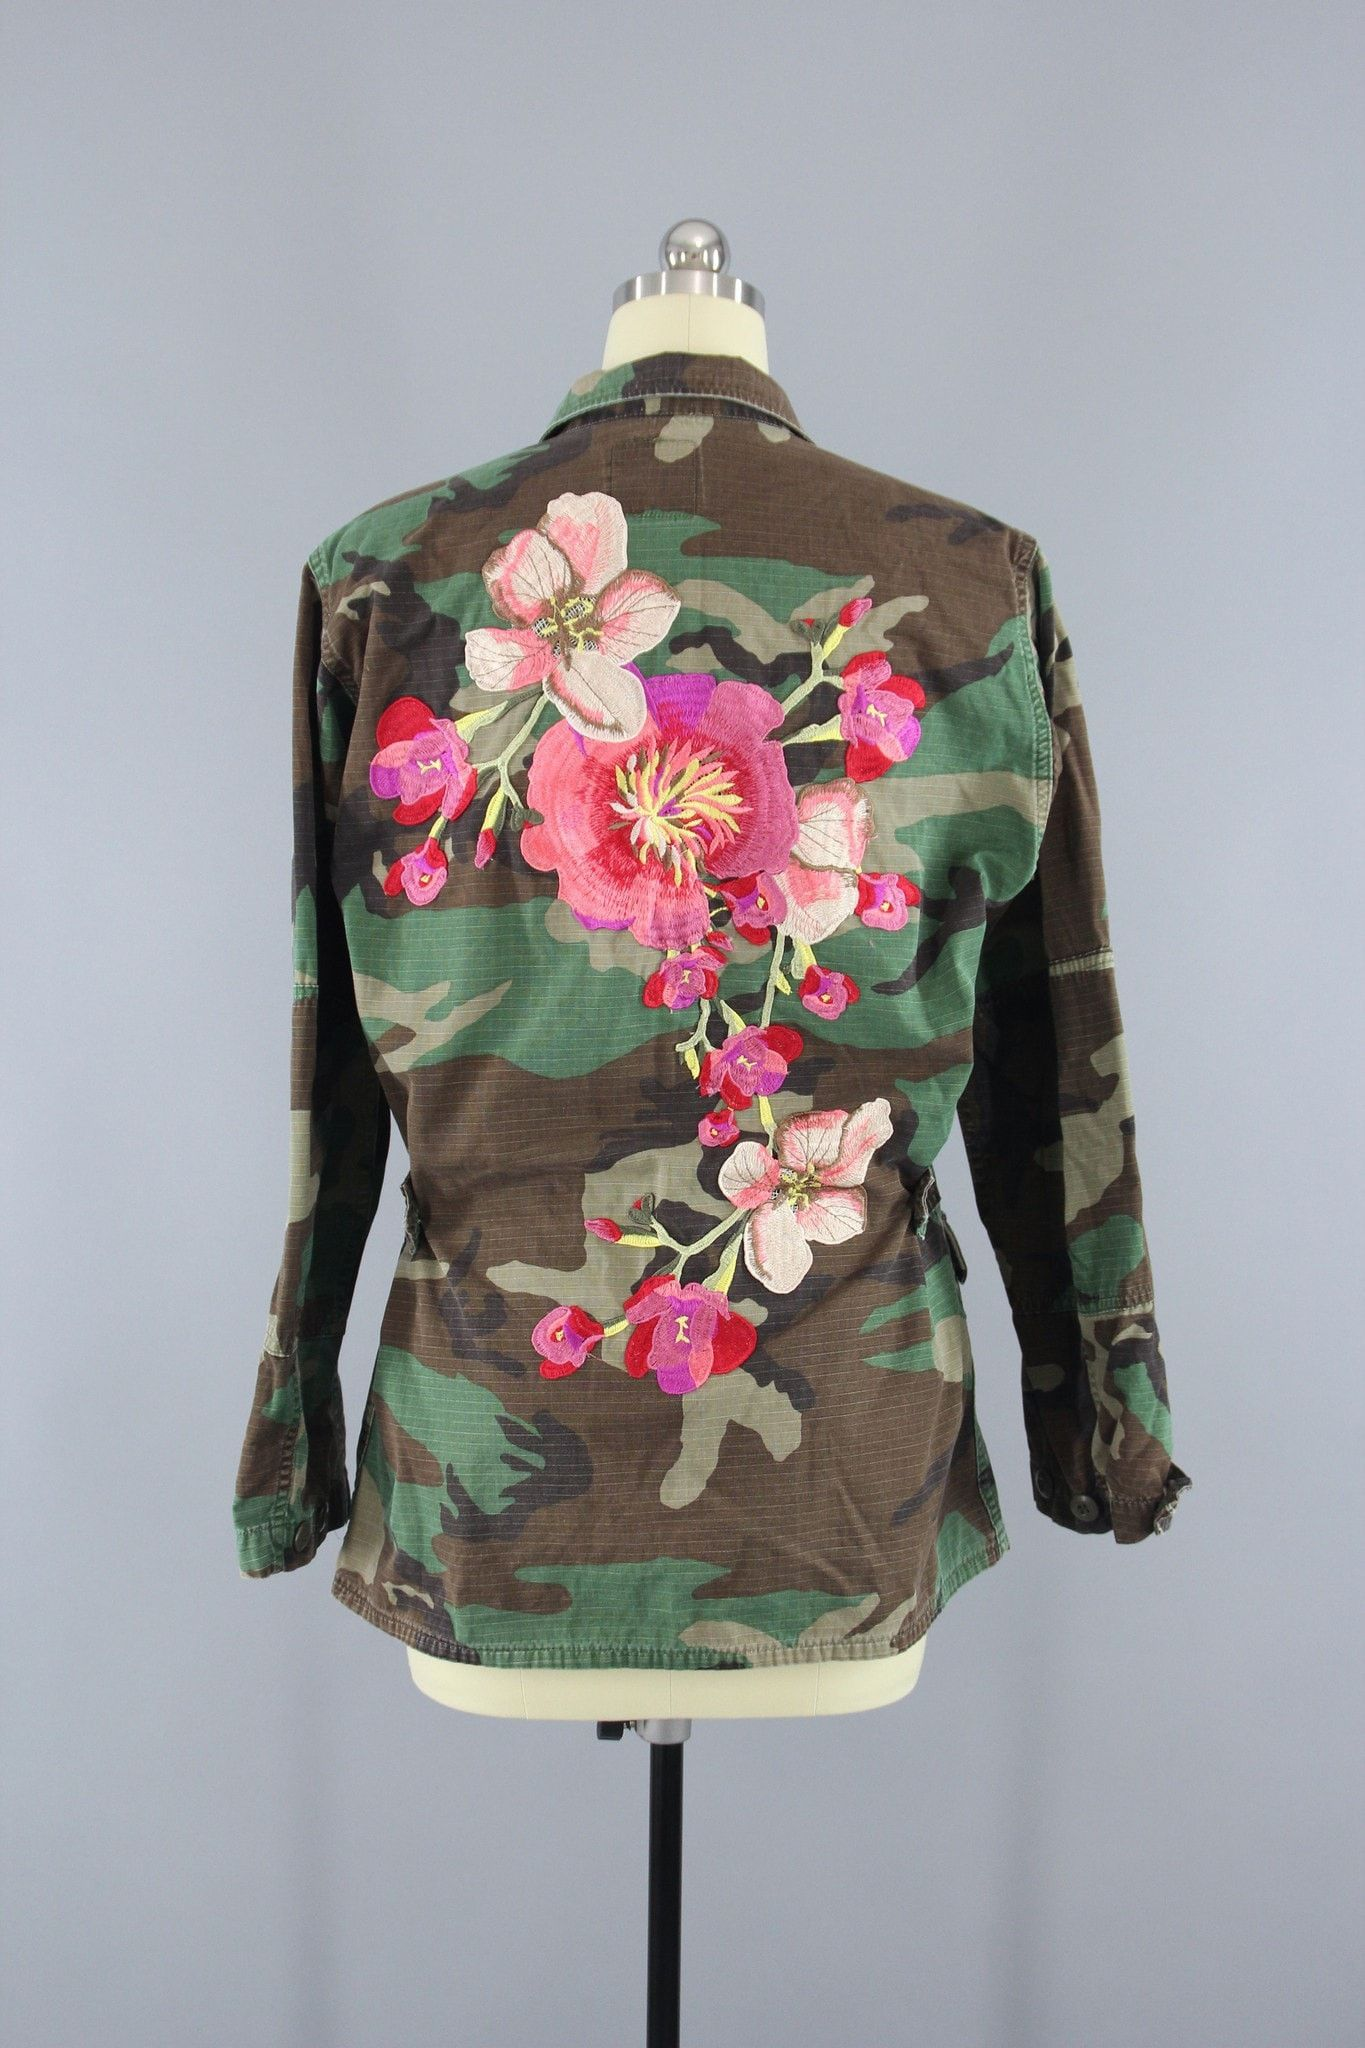 ebfda41fd51a0 Vintage Army Camouflage Military Jacket with Large Peach Pink Floral  Embroidery